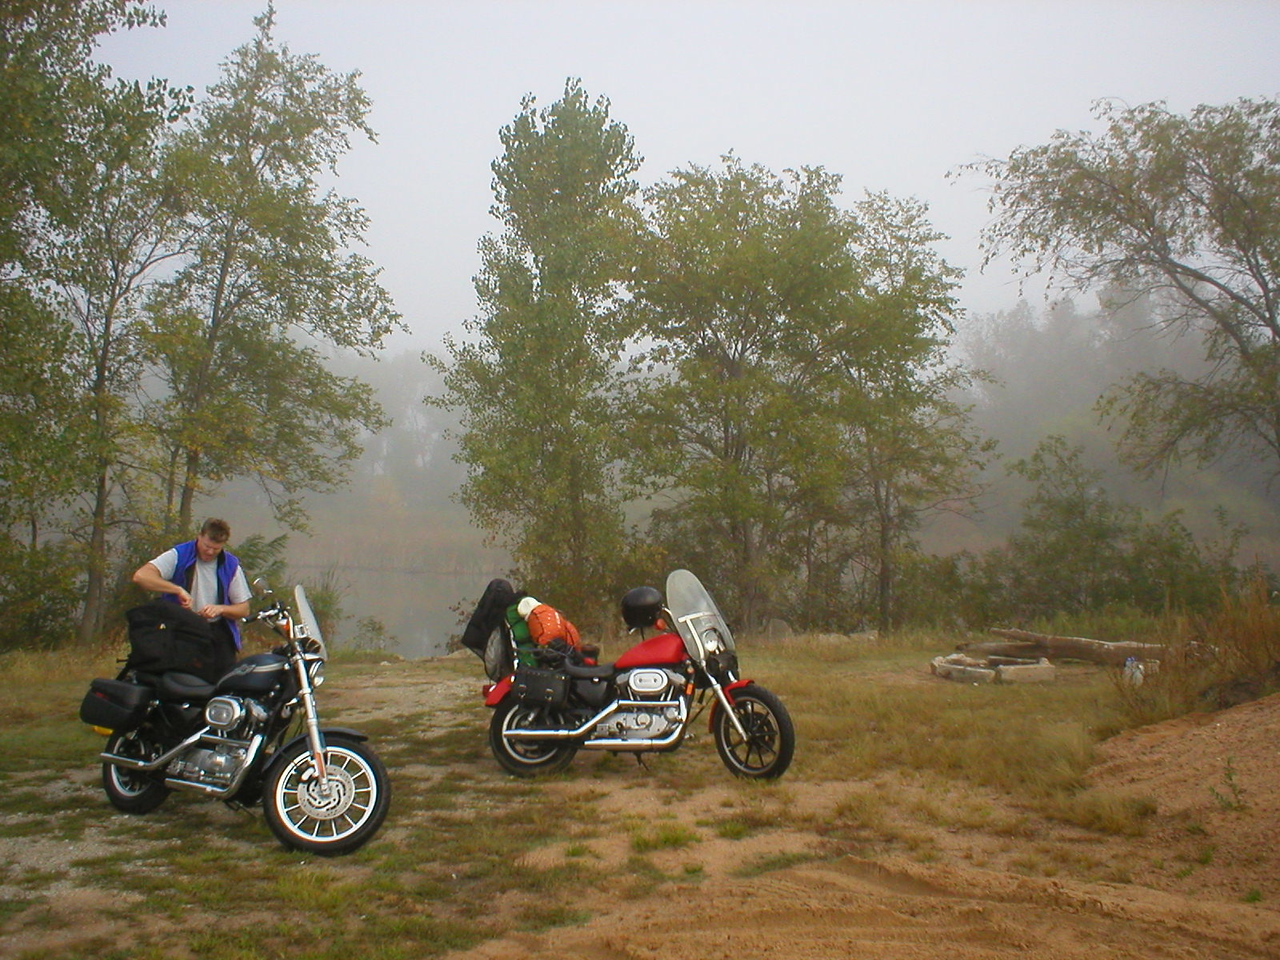 Socked in by a big fog:[/COLOR]<br /> That's OK, we have espresso coffee and breakfast food. We ride out easy by around 10:30 in still heavy fog. We are prepared to pull over way off the road if it turns to a pee soup-er.